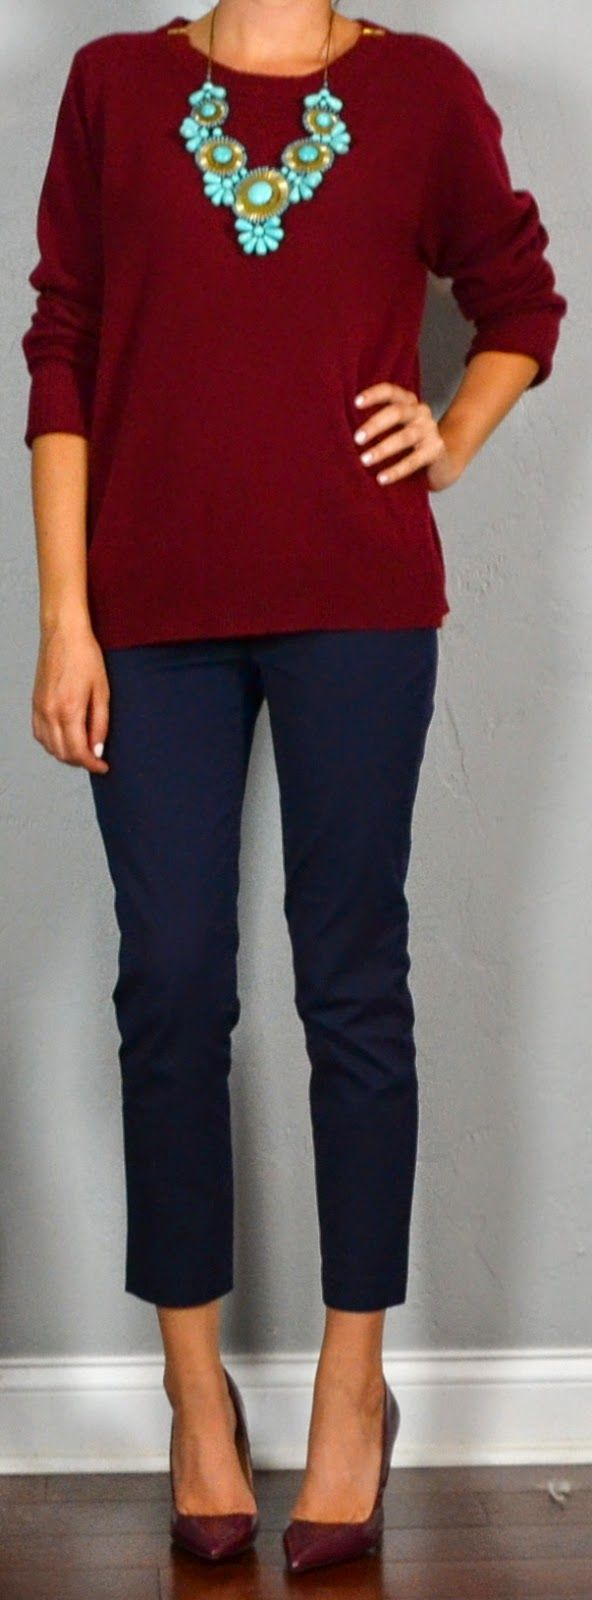 Inspiration - Pinterest I wouldn't think to pair navy maroon and turquoise together, but I really like...